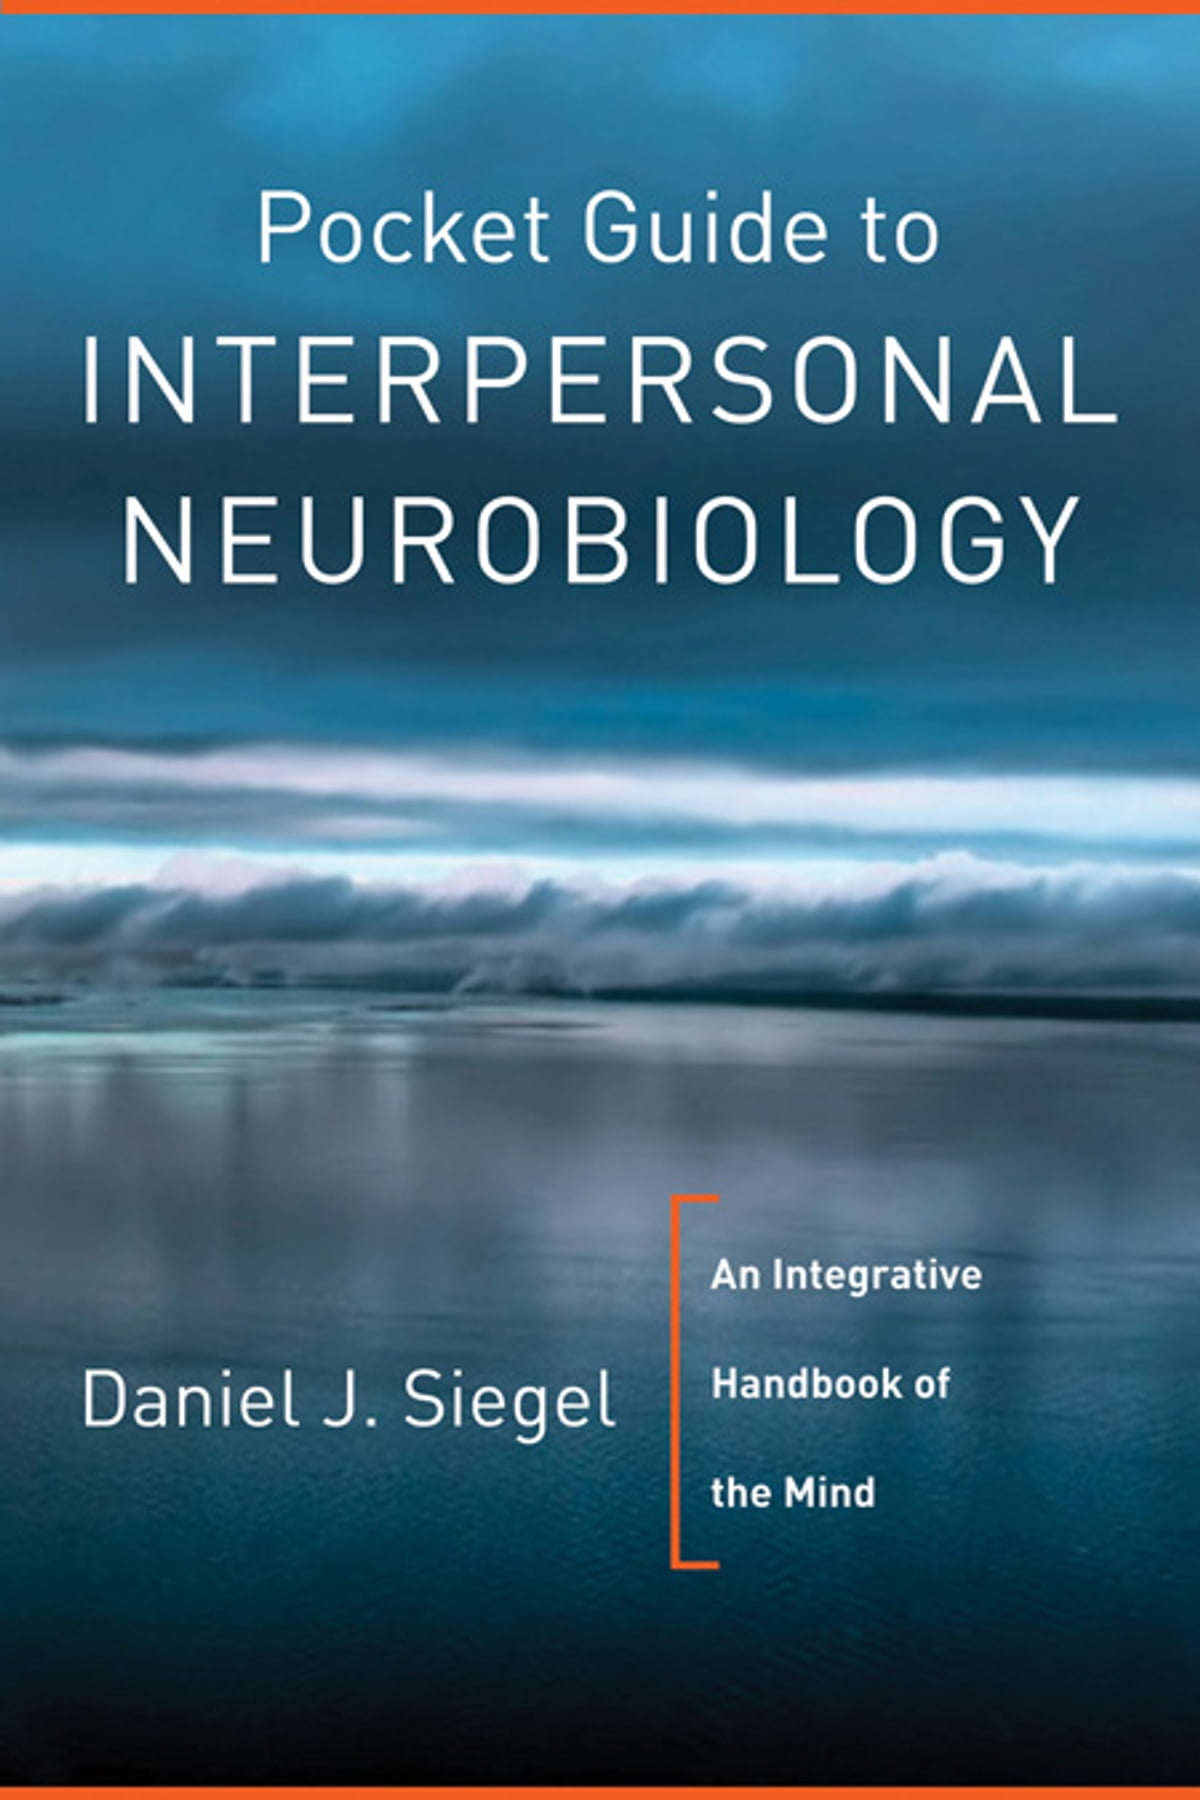 Pocket Guide to Interpersonal Neurobiology: An Integrative Handbook of the  Mind (Norton Series on Interpersonal Neurobiology) eBook by Daniel J.  Siegel ...